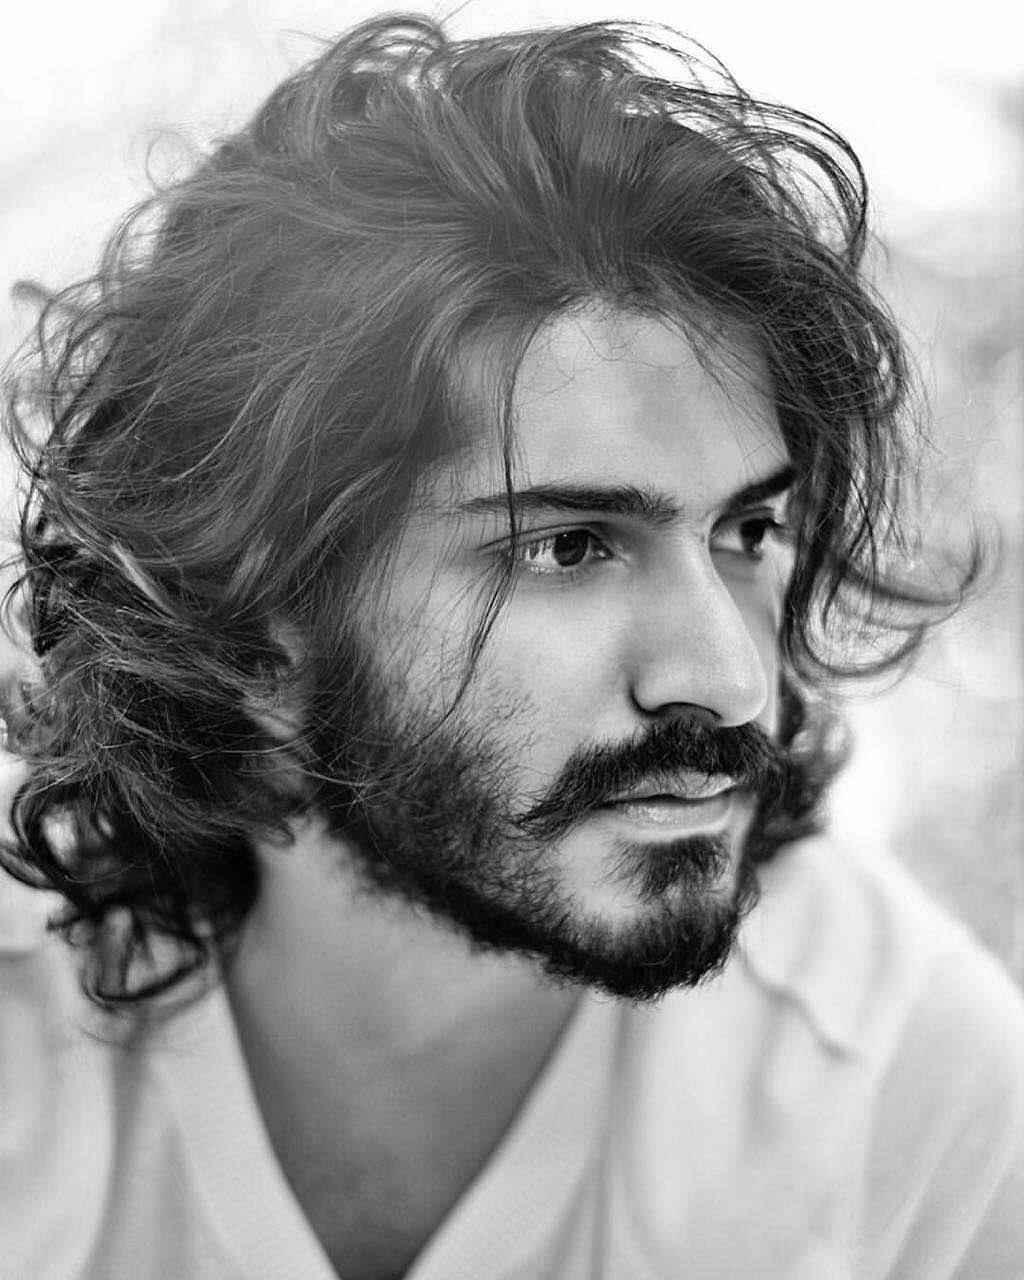 Harshavardhan dotes on his two sisters Rhea and Sonam and has their names tattooed on his back. (Photo courtesy: Subhash K Jha)